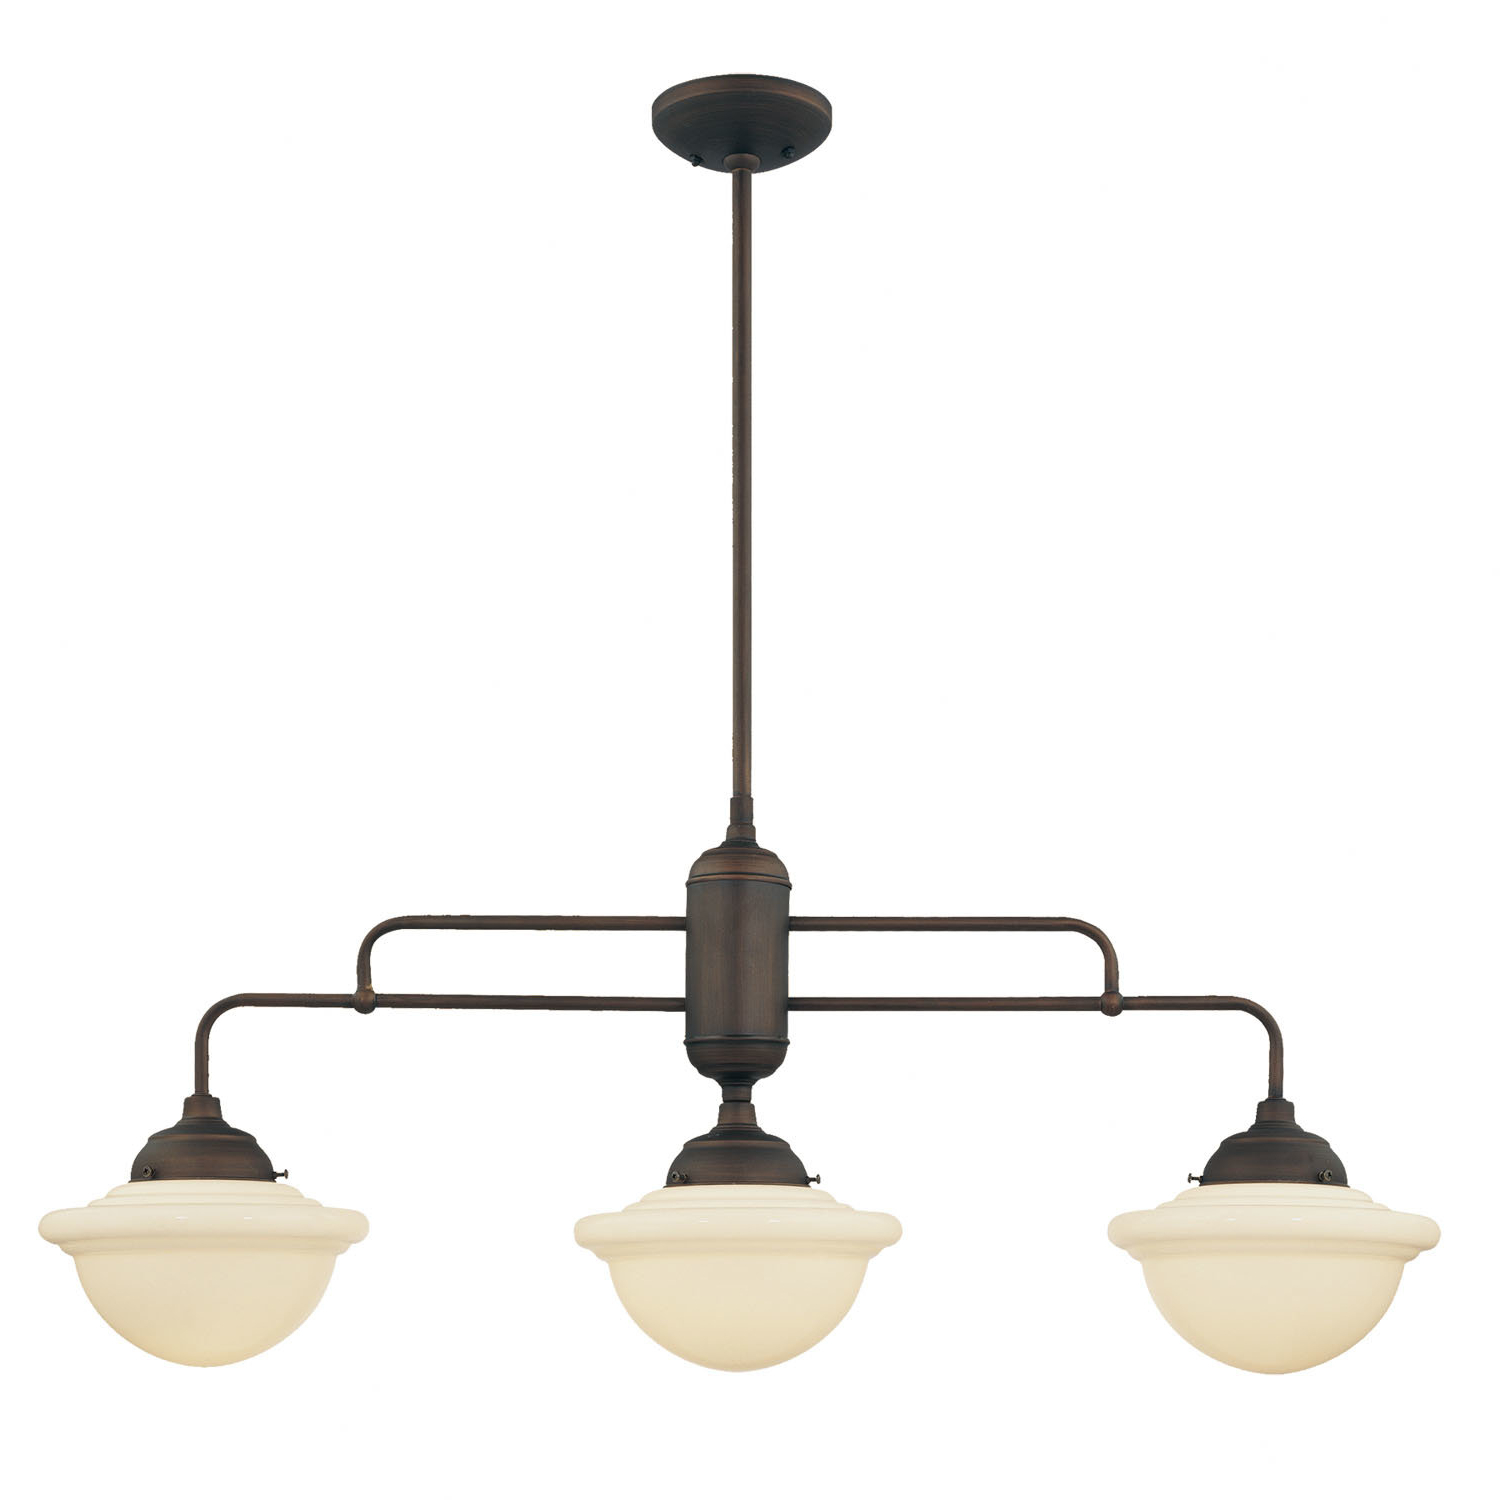 Best And Newest Bruges 3 Light Kitchen Island Schoolhouse Pendant For Dunson 3 Light Kitchen Island Pendants (View 3 of 20)